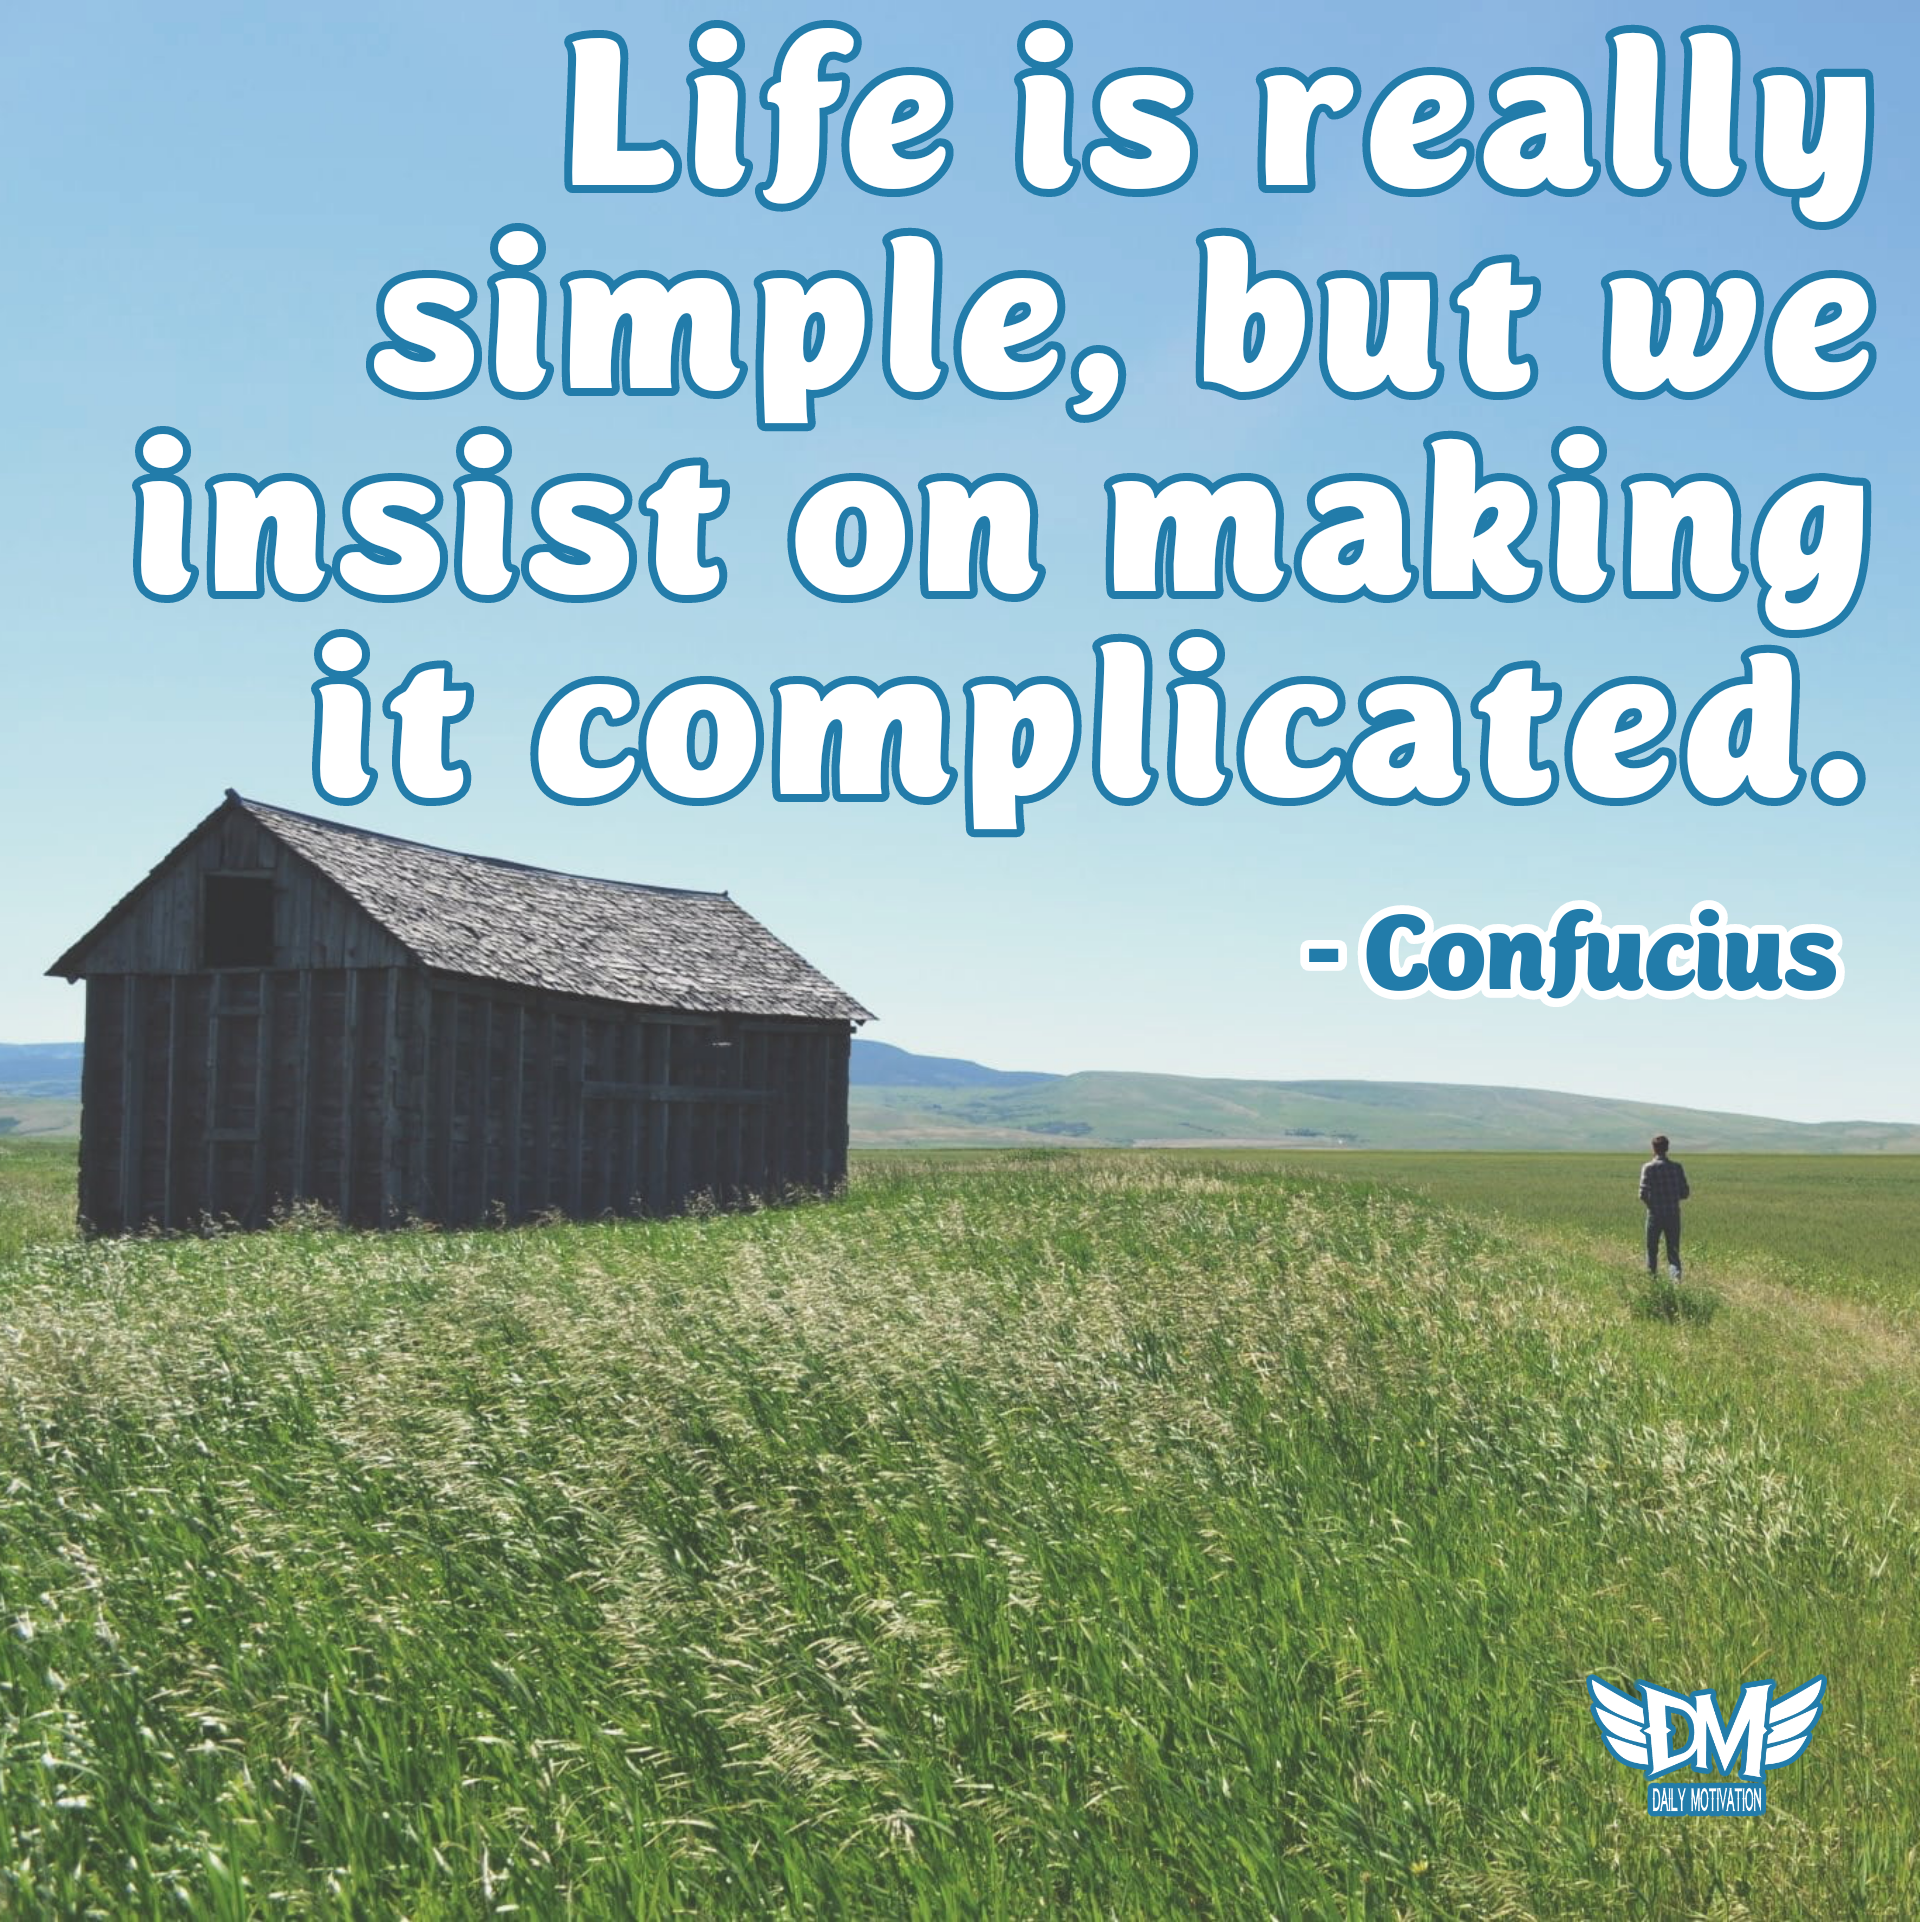 """Life is really simple, but we insist on making it complicated."" – Confucius [1920 x 1922]"